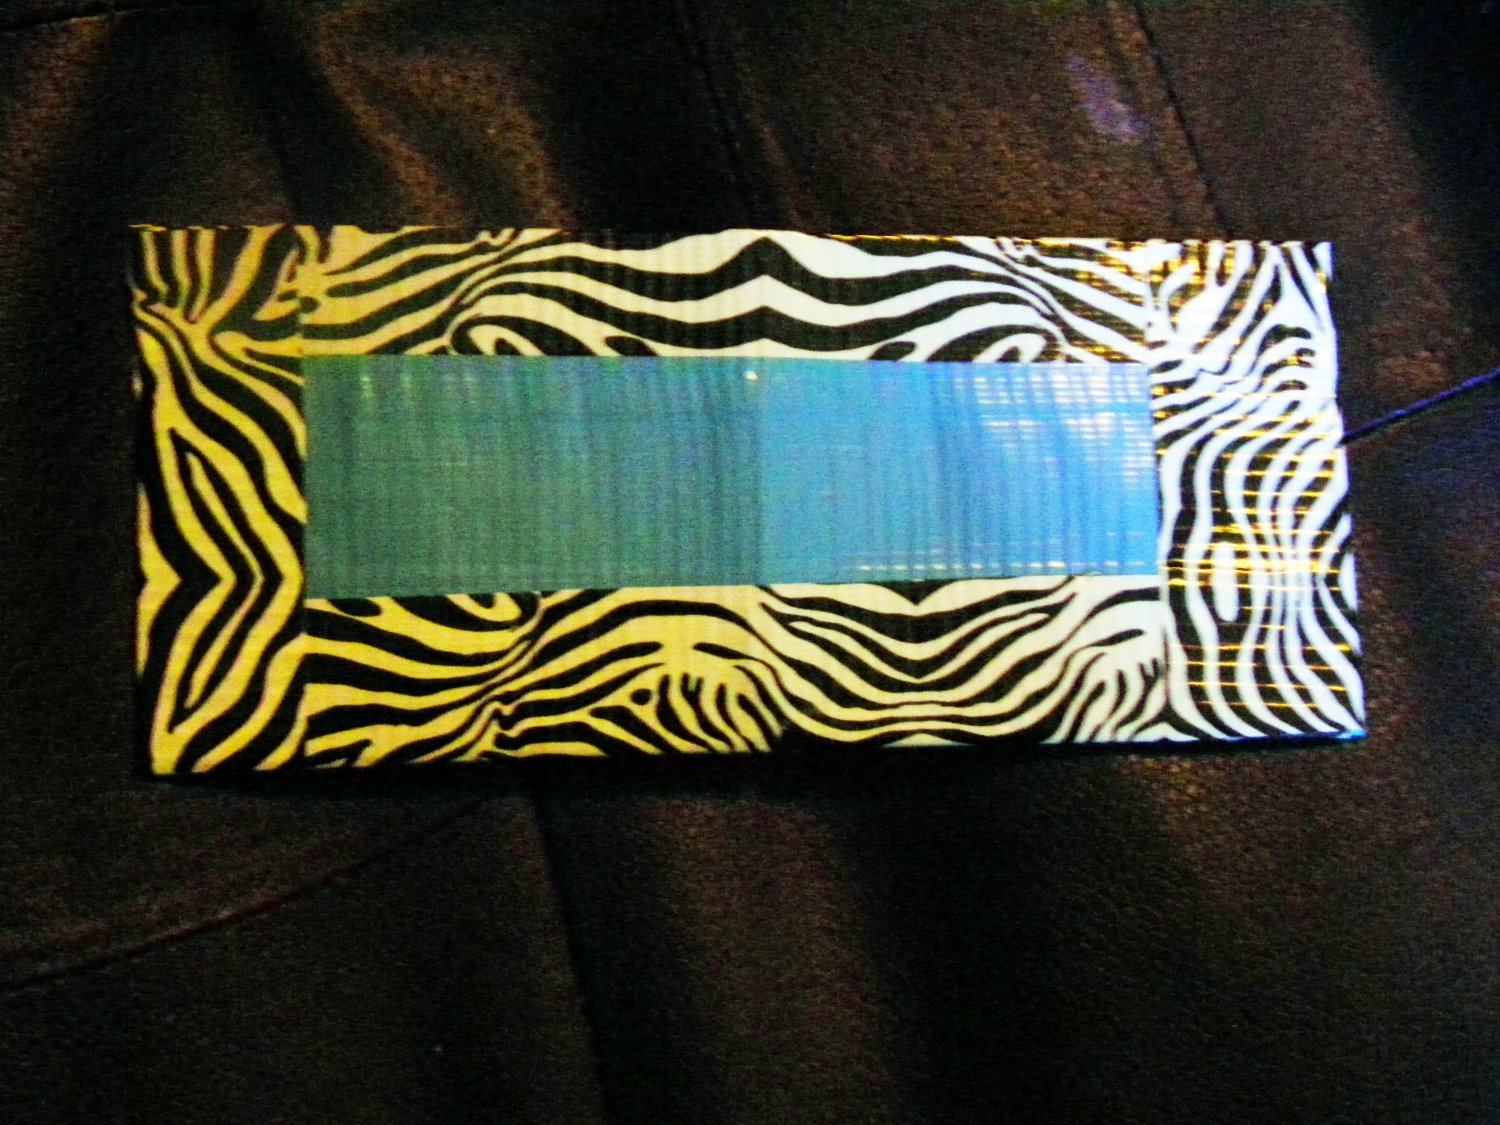 Two Toned Duct Tape Wallet